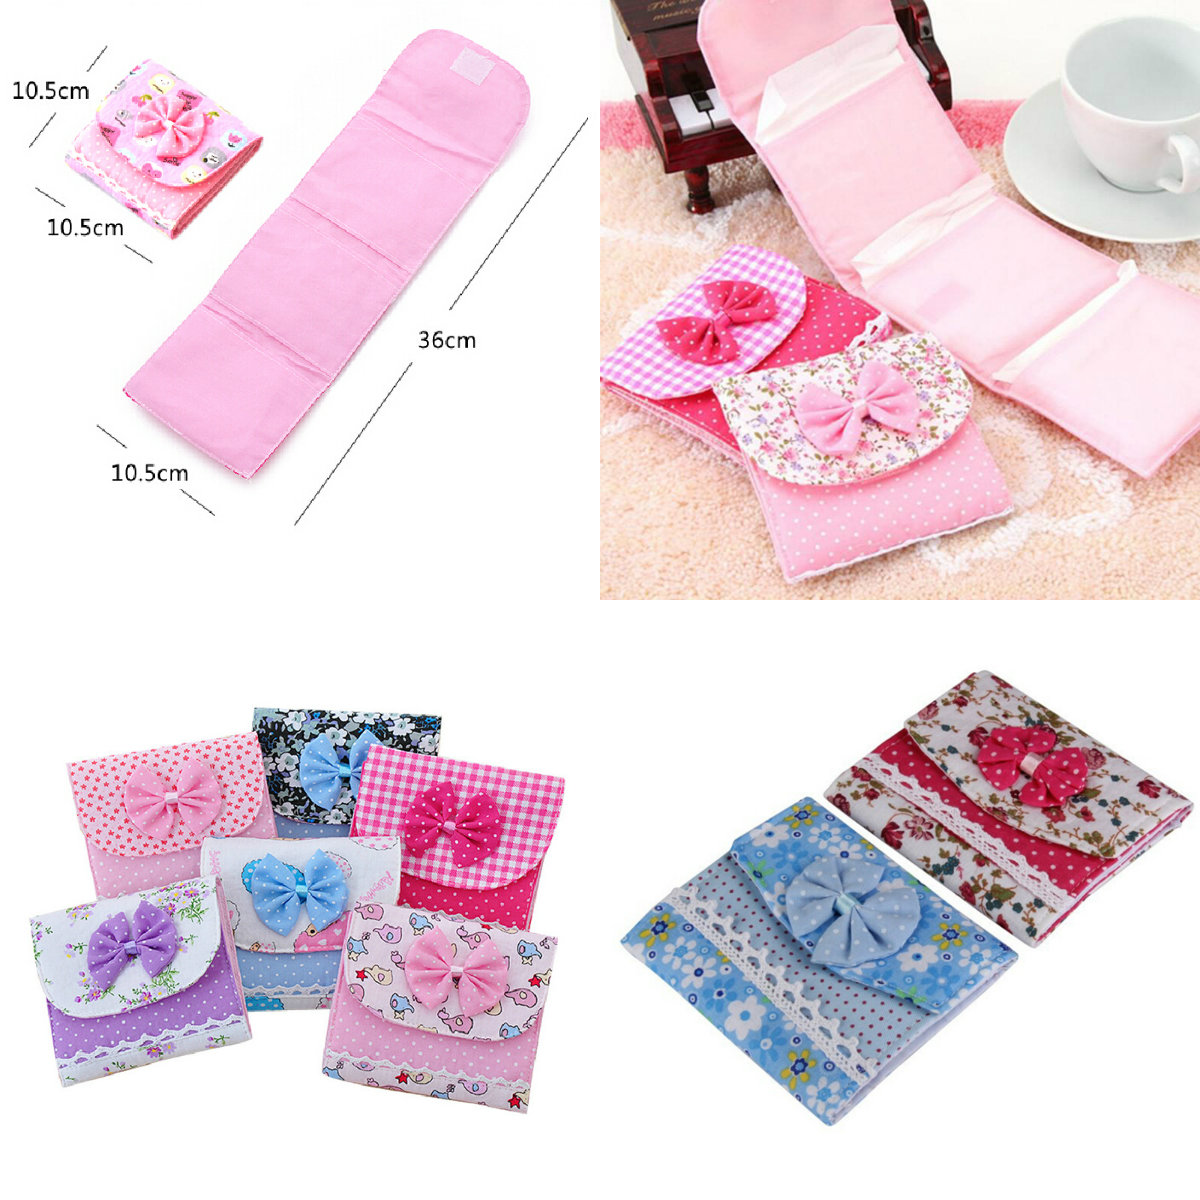 1PCS Cute Small Articles Gather Pouch Case Cotton Sanitary Napkin Bag Organizer Storage Hold Pads Carrying Bag